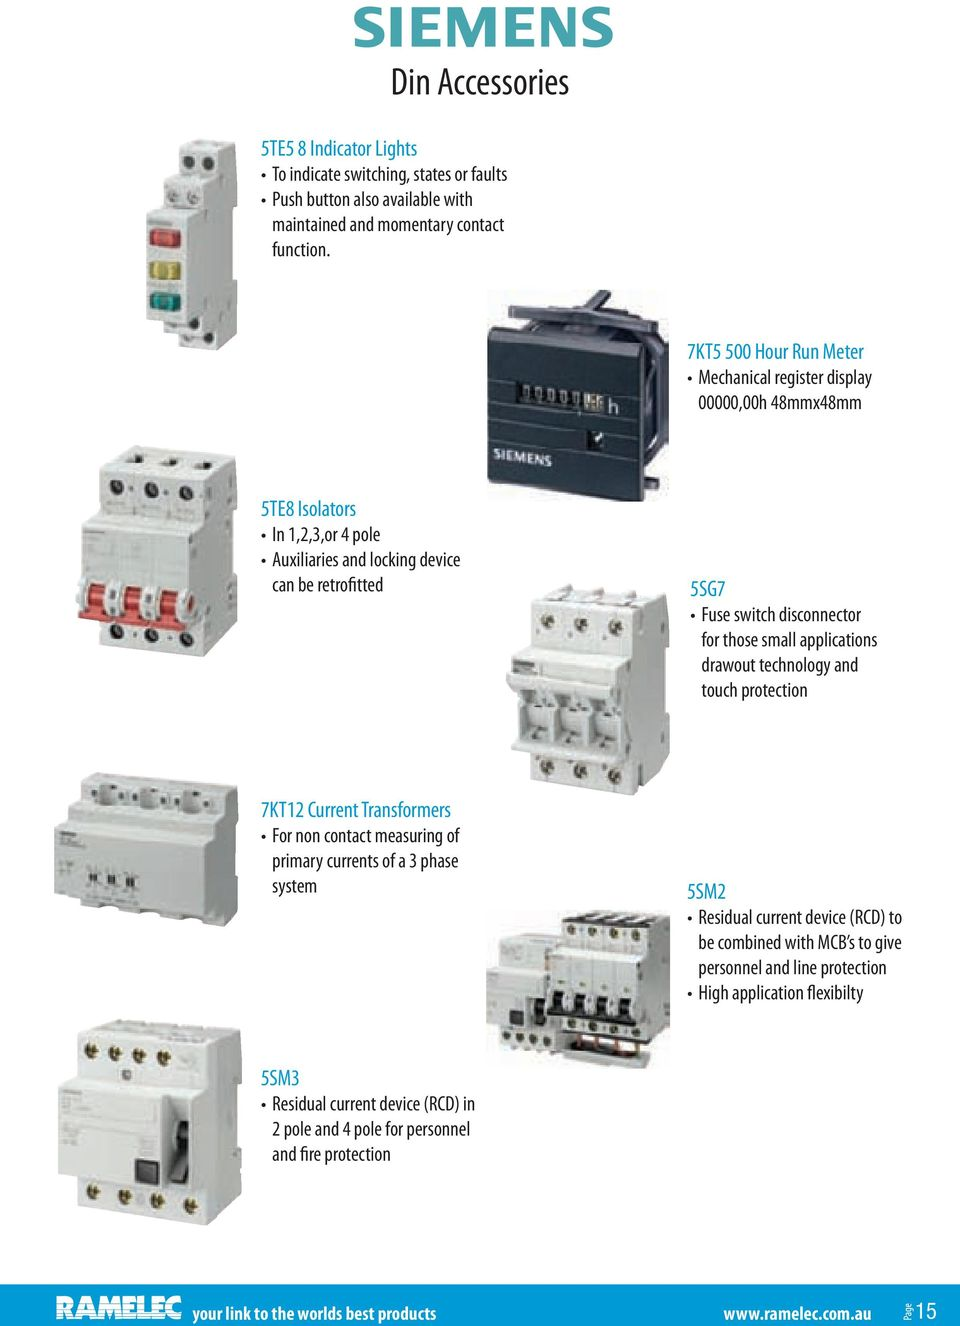 Distribution Boards Chassis Transfer Switches Pdf 220v Double Poles 2p Switch Type Rccb Residual Current Circuit Breaker Those Small Applications Drawout Technology And Touch Protection 7kt12 Transformers For Non Contact Measuring Of